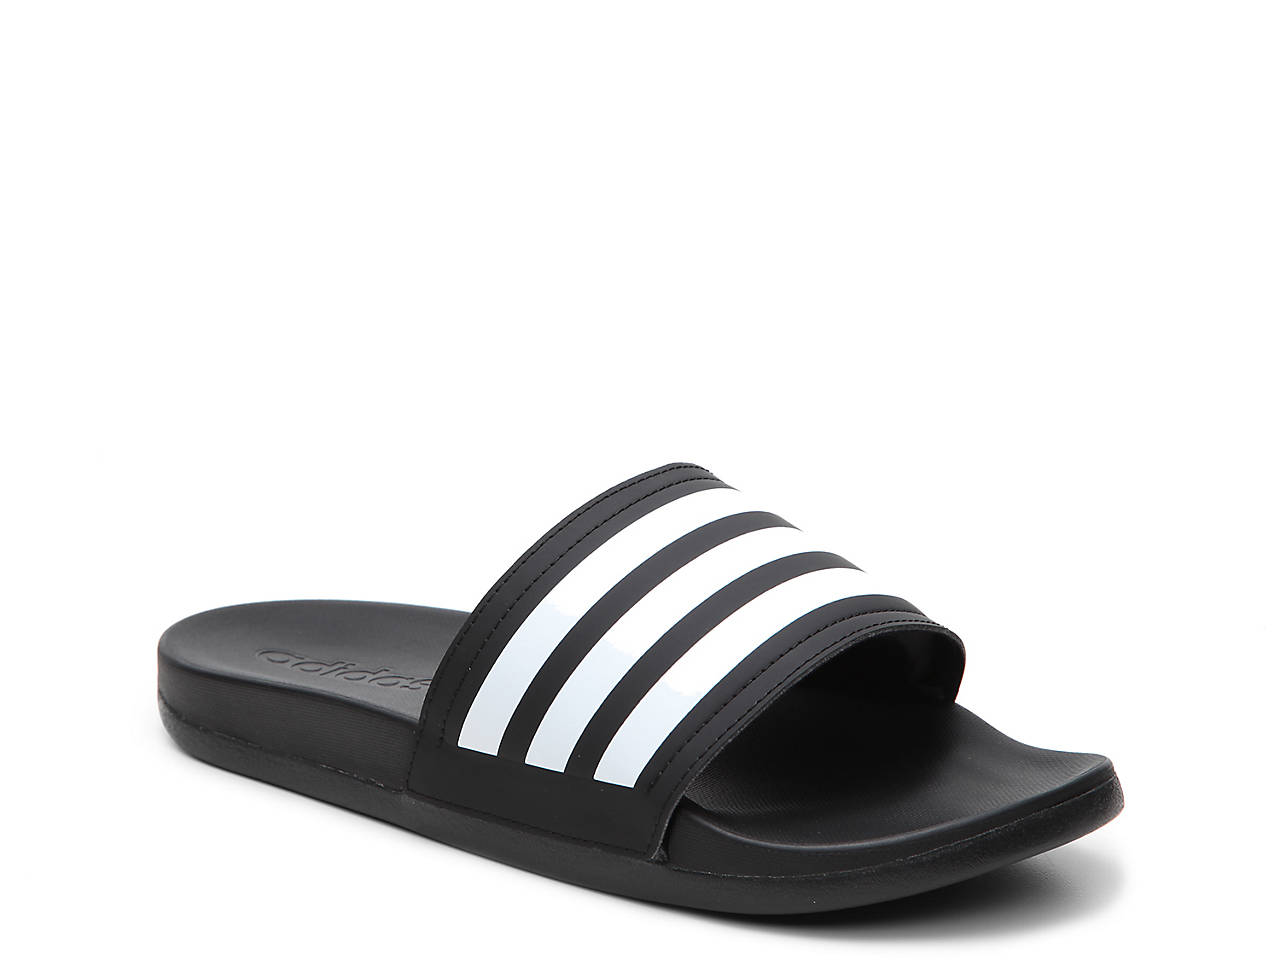 adidas Adilette Cloudfoam Ultra Stripes Slide Sandal - Women s ... db92f276d